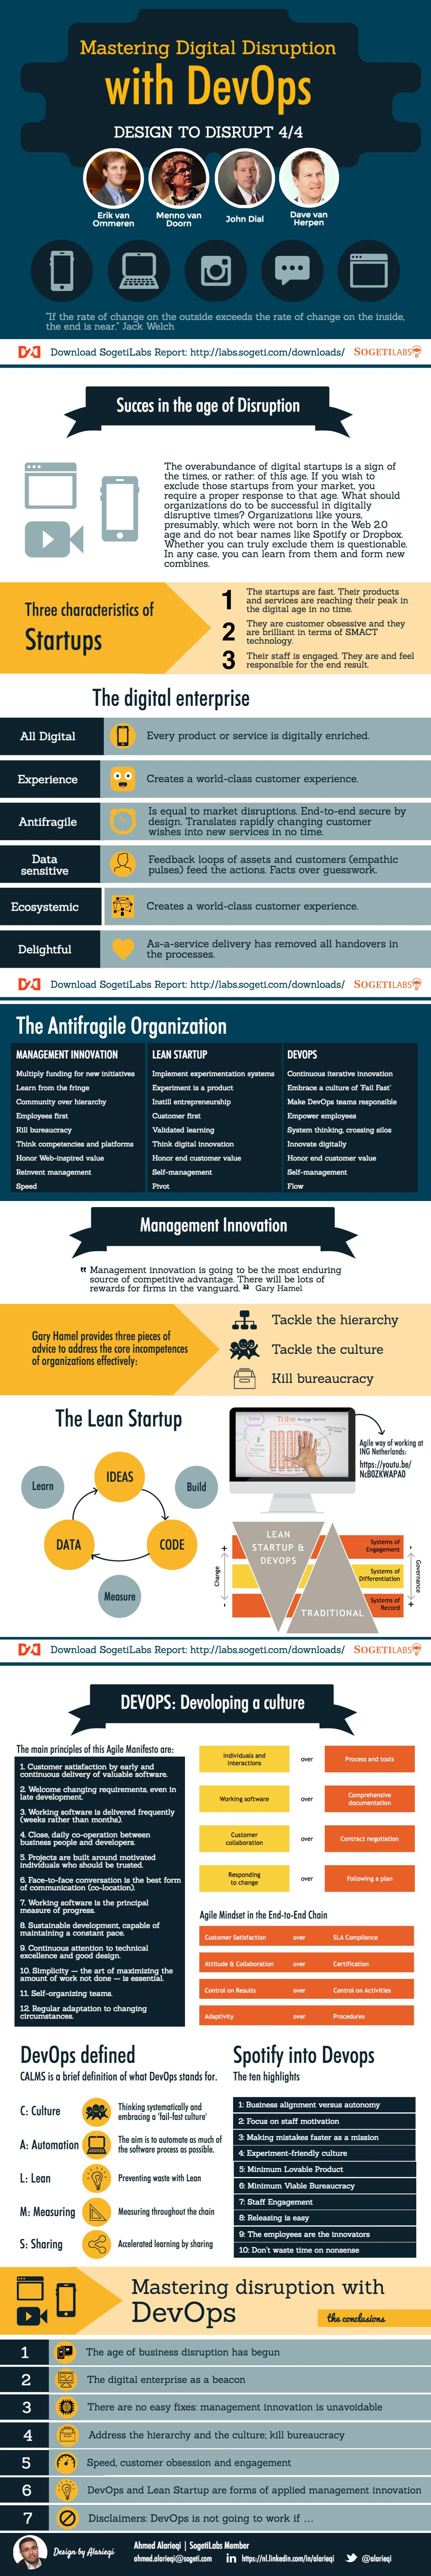 Infographic – Mastering Digital Disruption with DevOps